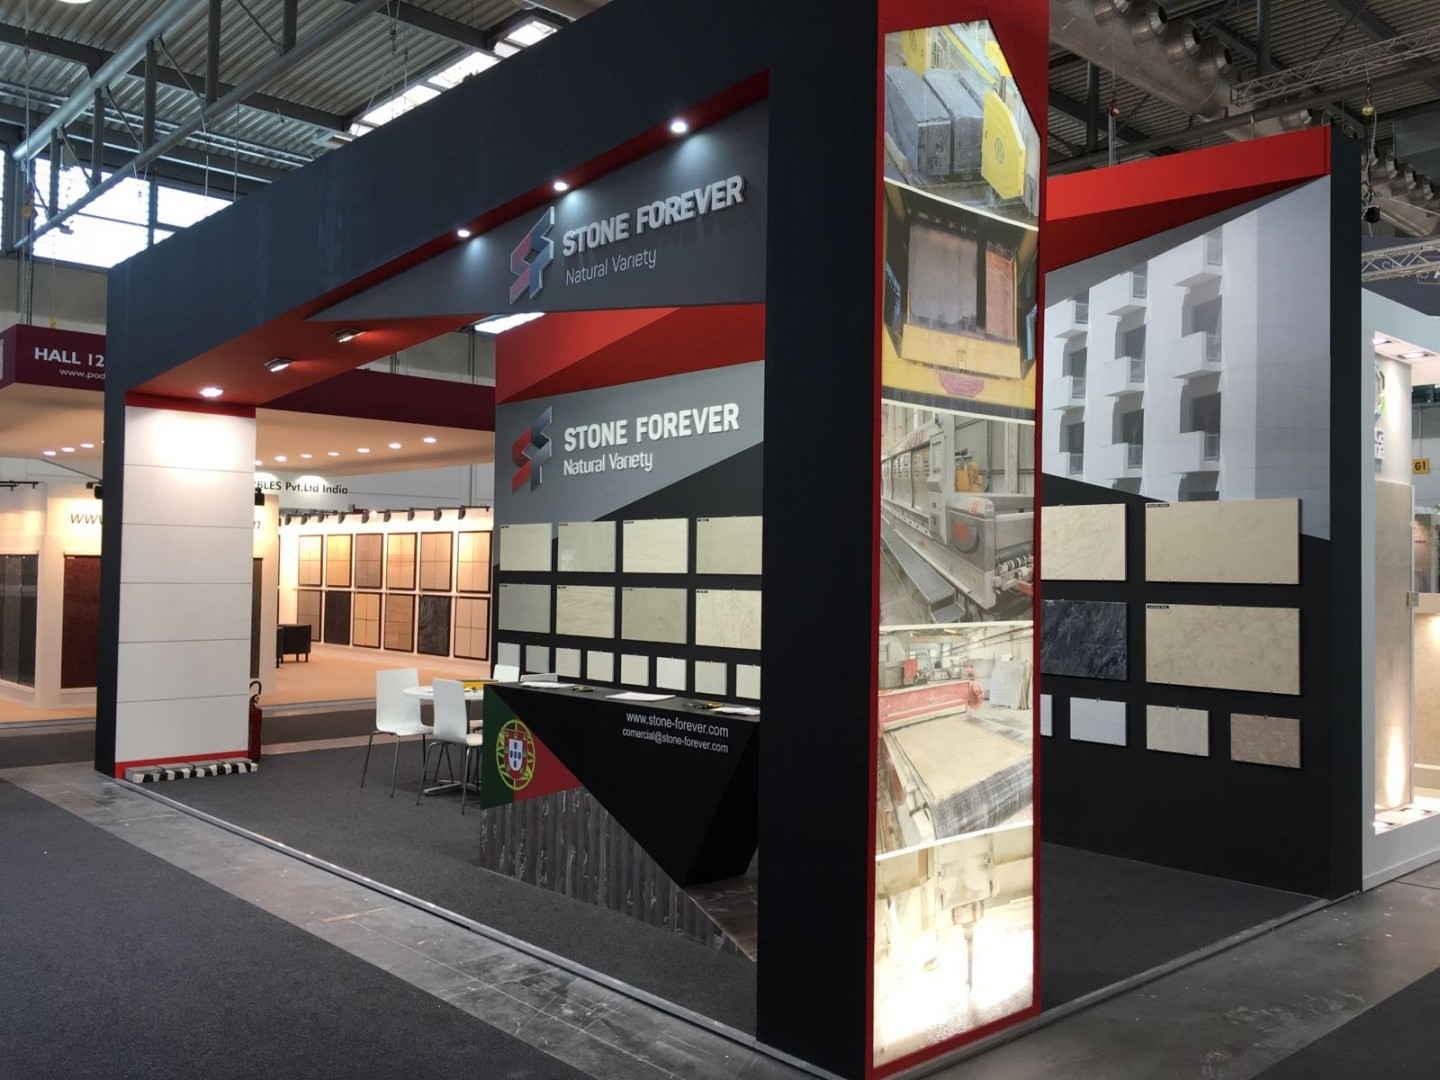 Stone forever natural variety marmomacc 2016 for Marmomacc verona 2017